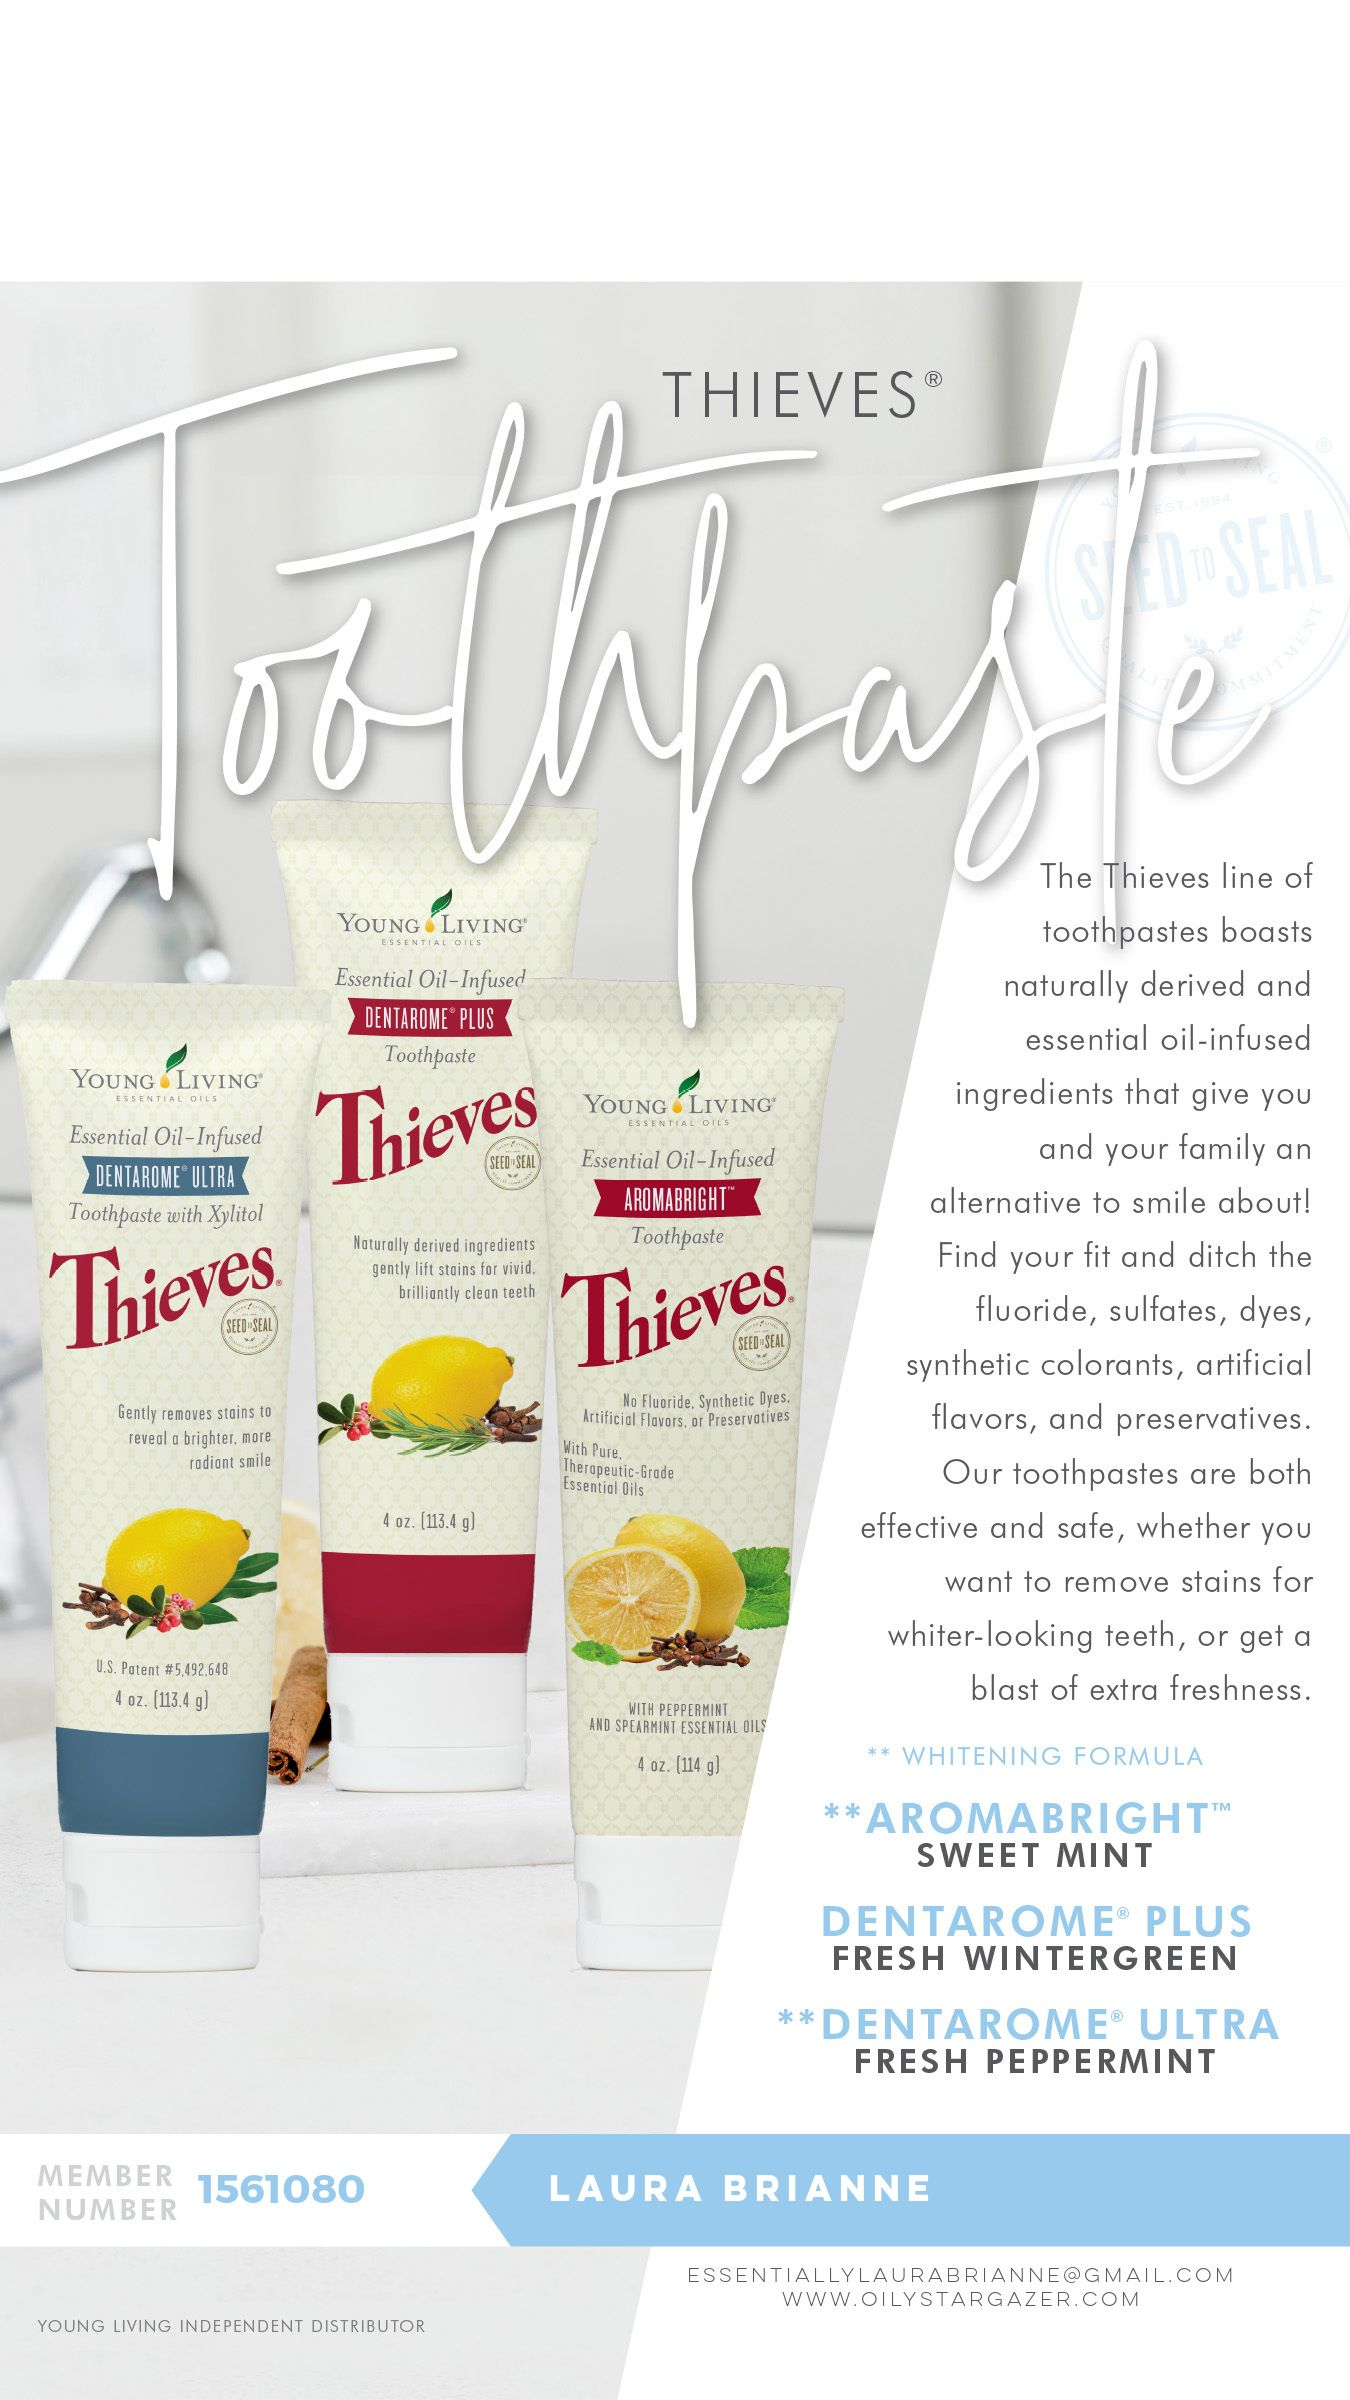 Thieves Toothpaste #Teeth #Tooth #Clean #Mouth #Dental #Toothpaste #Thieves  Find these products and so much more at www.oilystargazer.com